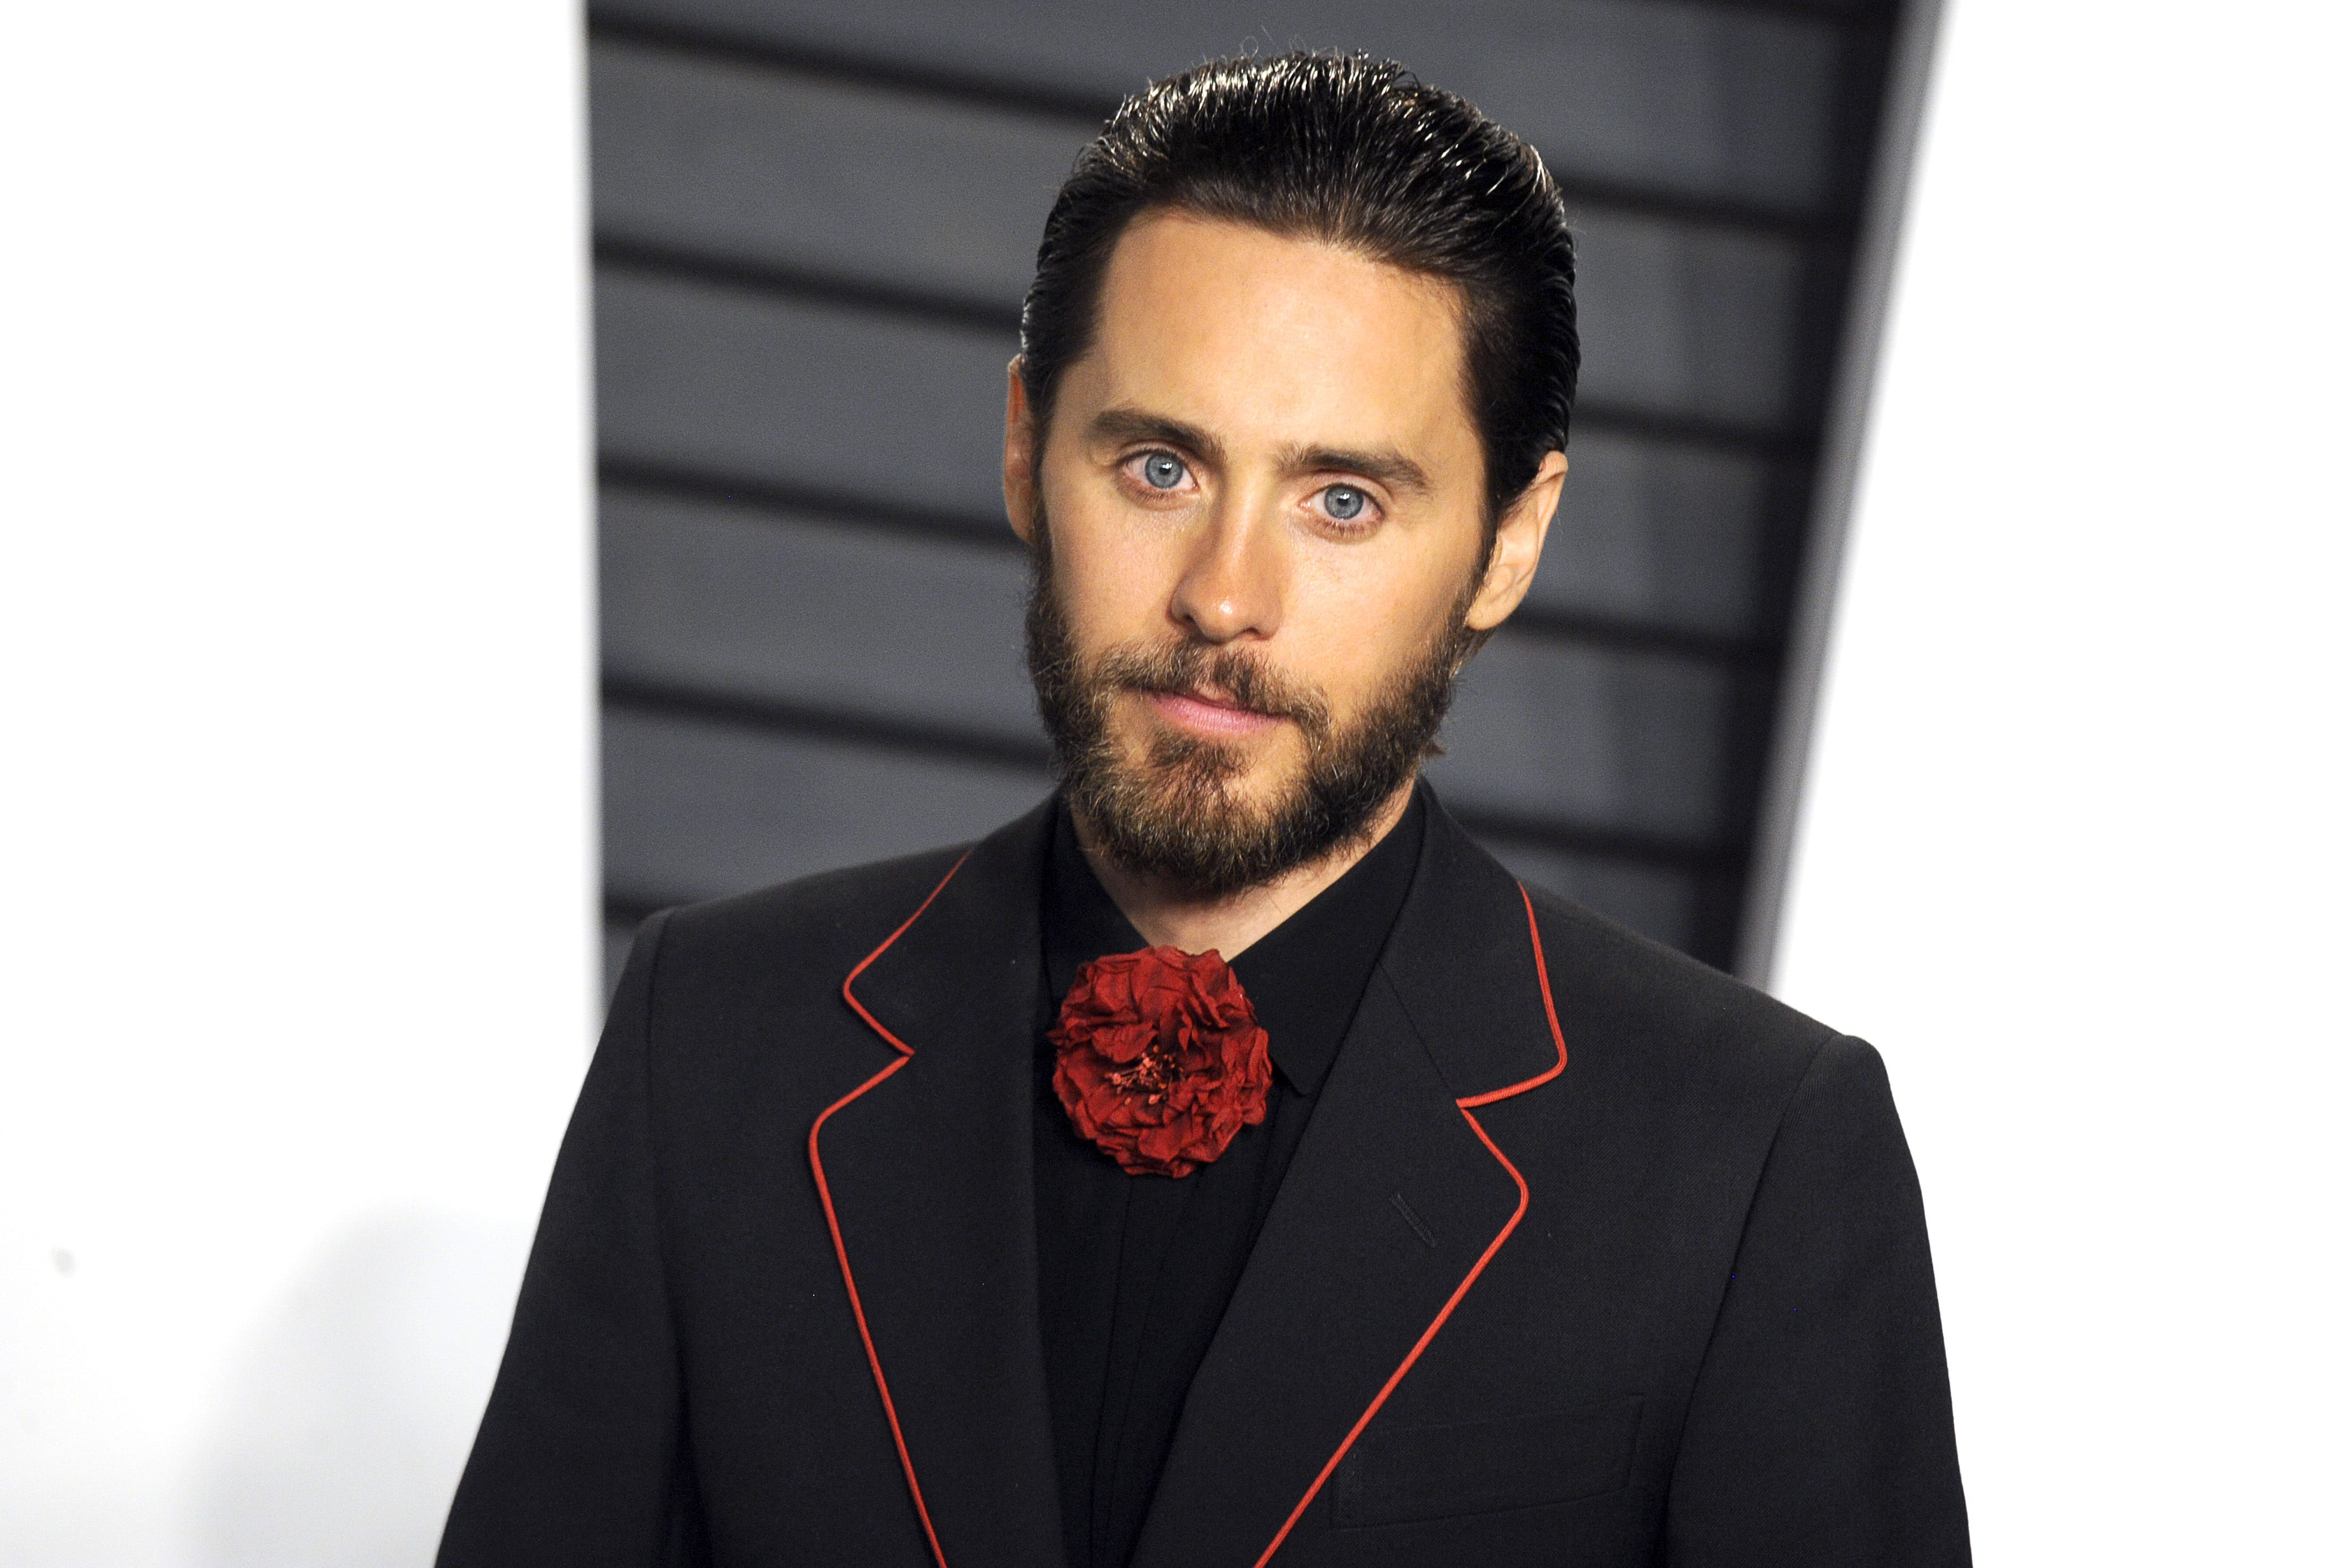 Jared Letto will be playing Hugh Hefner in an upcoming biopic about his eccentric life. (Photo: WENN)